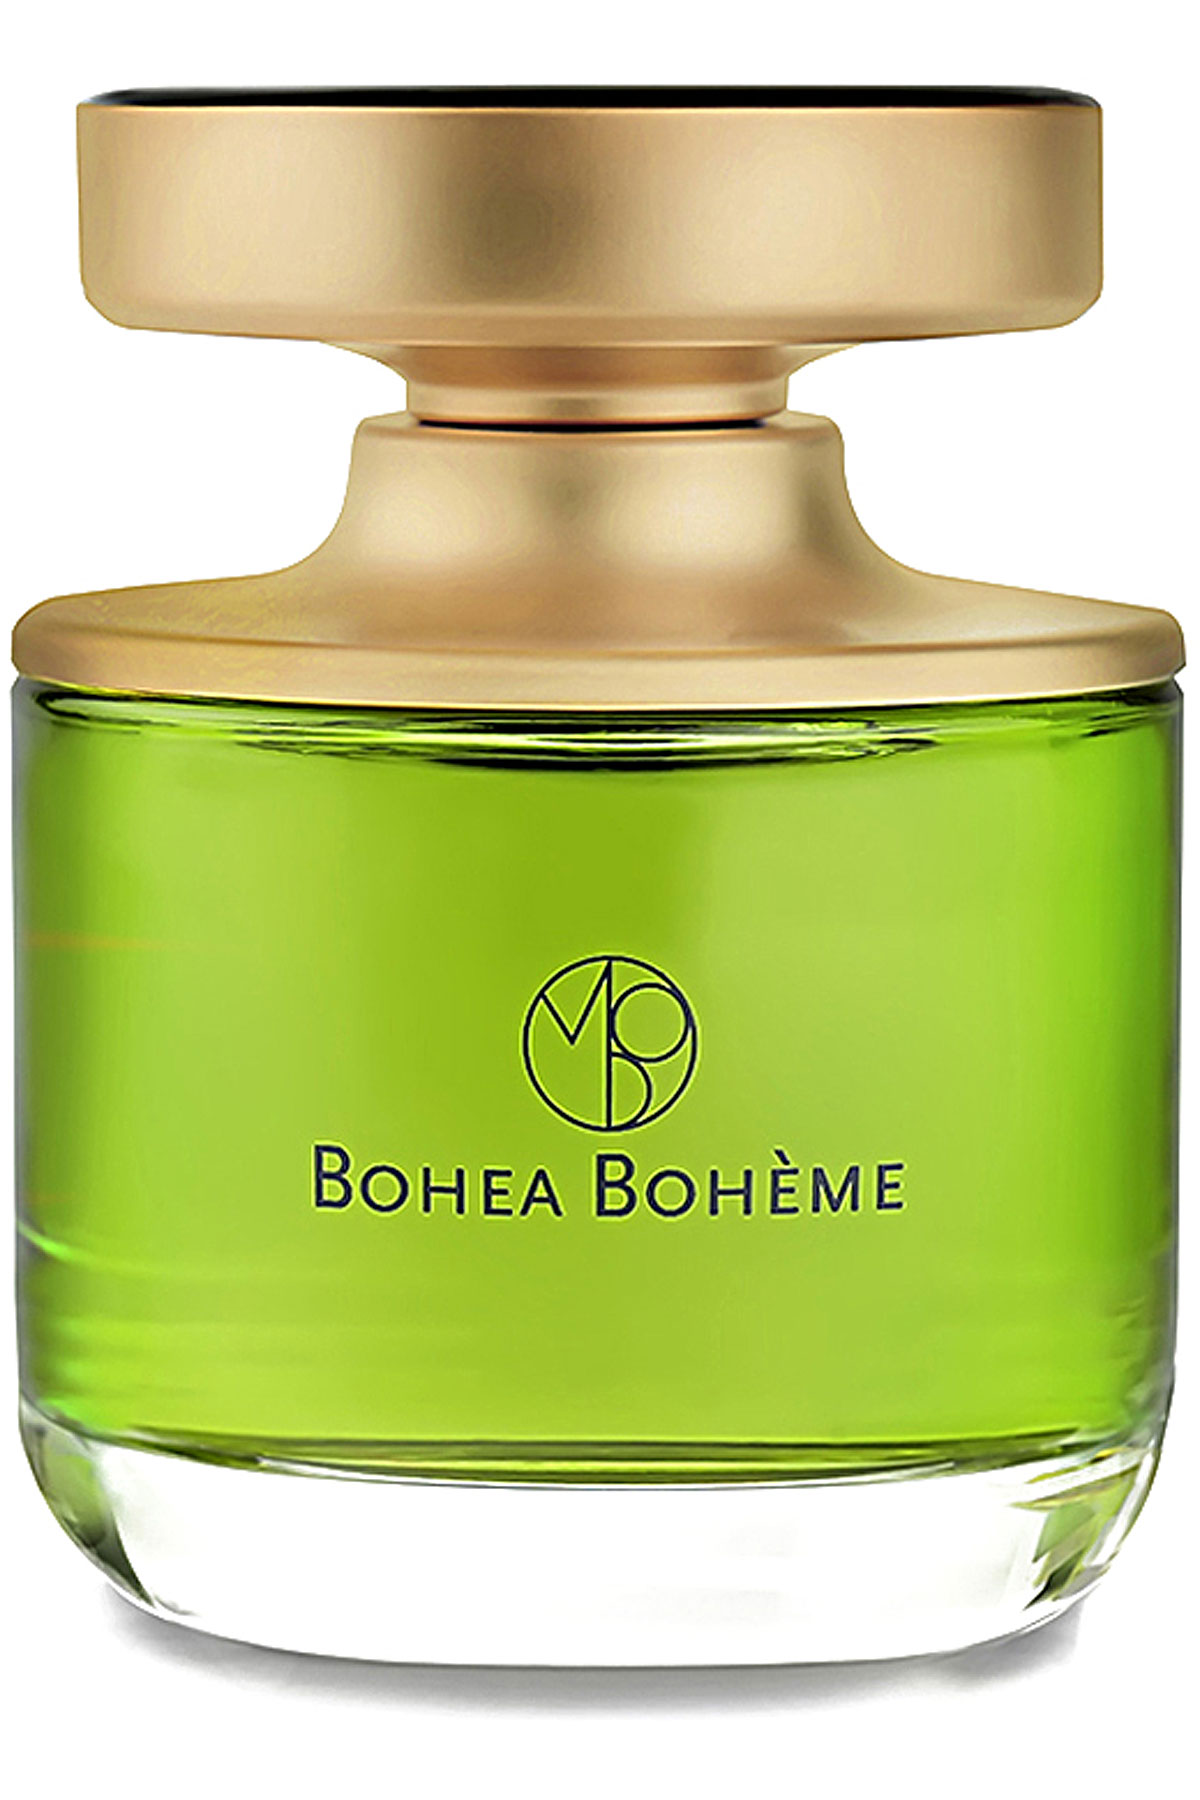 Mona di Orio Fragrances for Men On Sale, Bohea Boheme Eau De Parfum 75 Ml, 2019, 75 ml